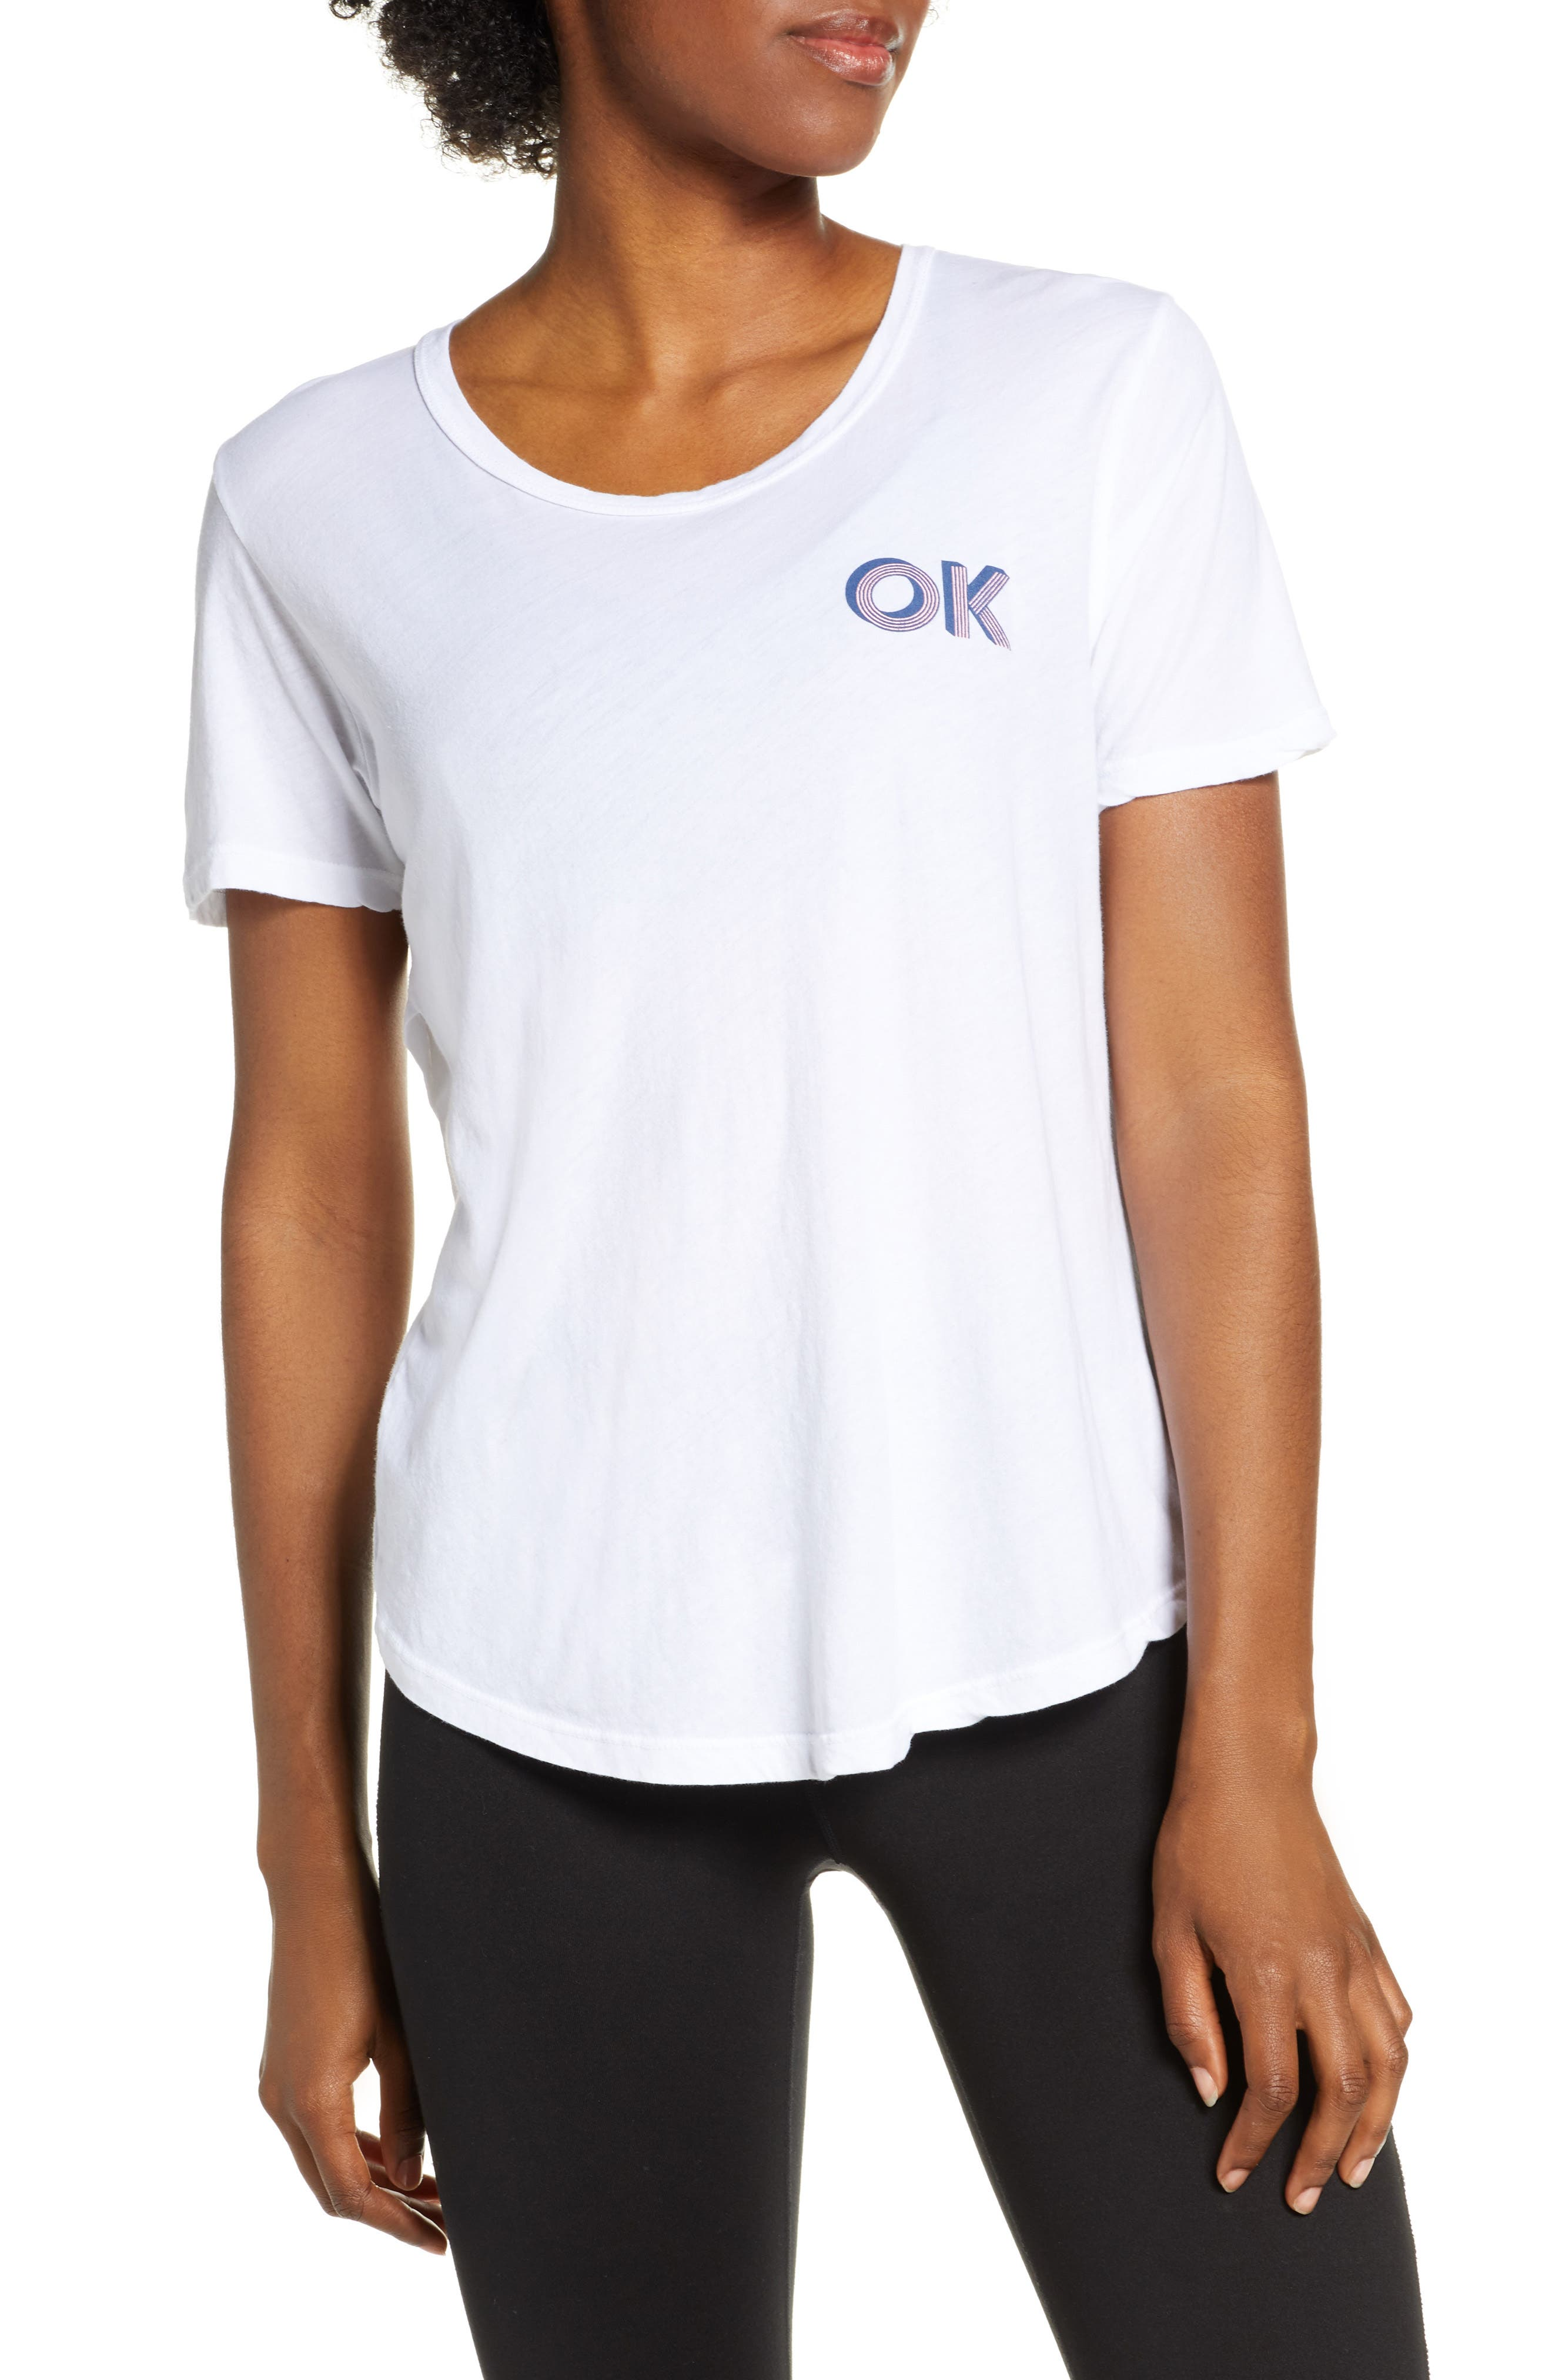 Good Hyouman Lexi Ok Graphic Tee, White